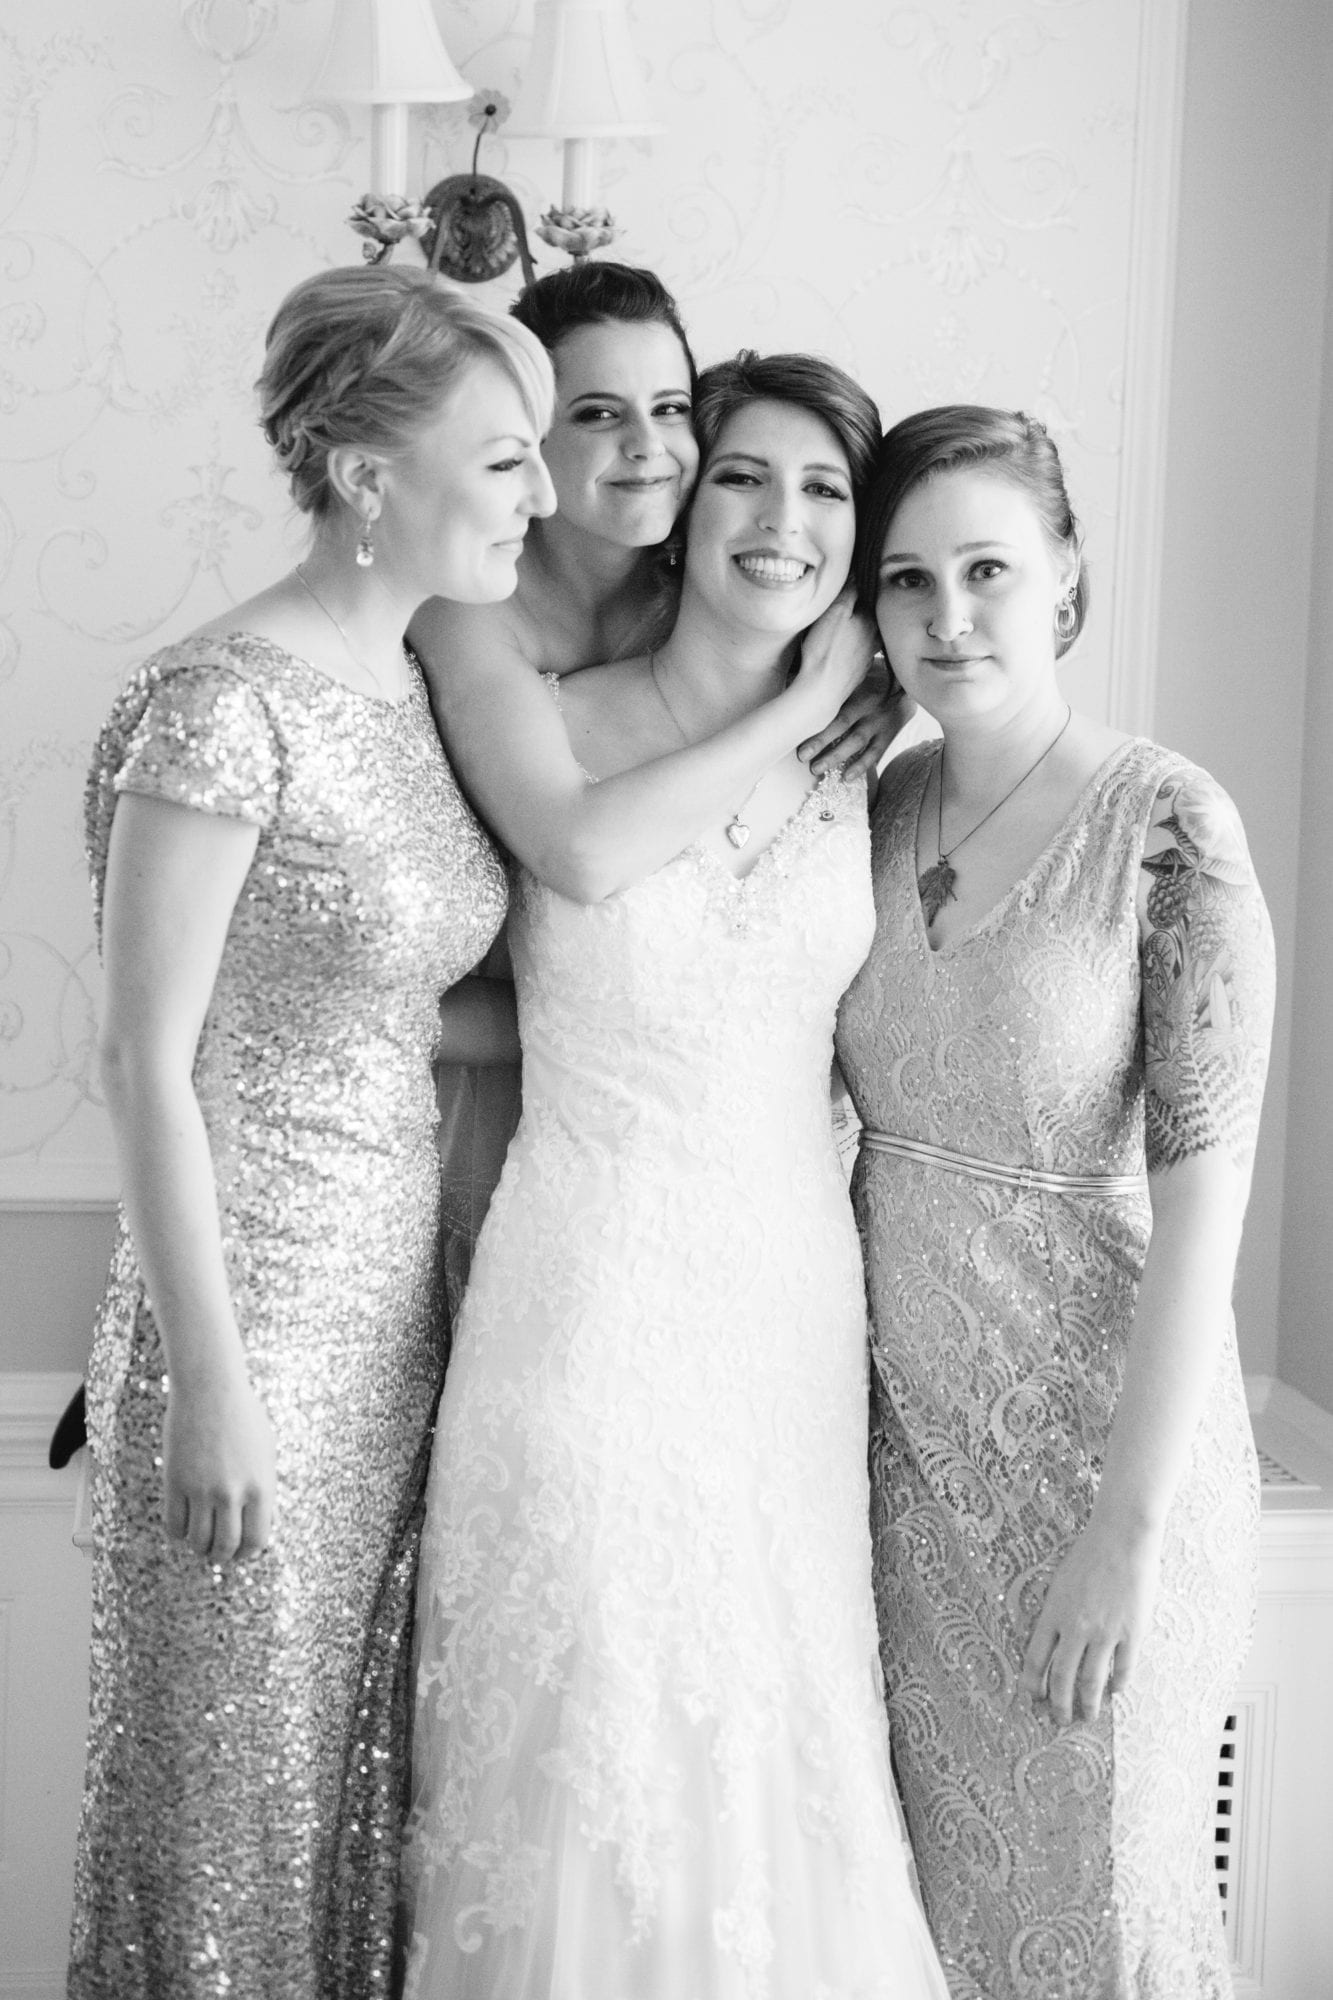 Bridesmaids Heintzman House Wedding Zsuzsi Pal Photography